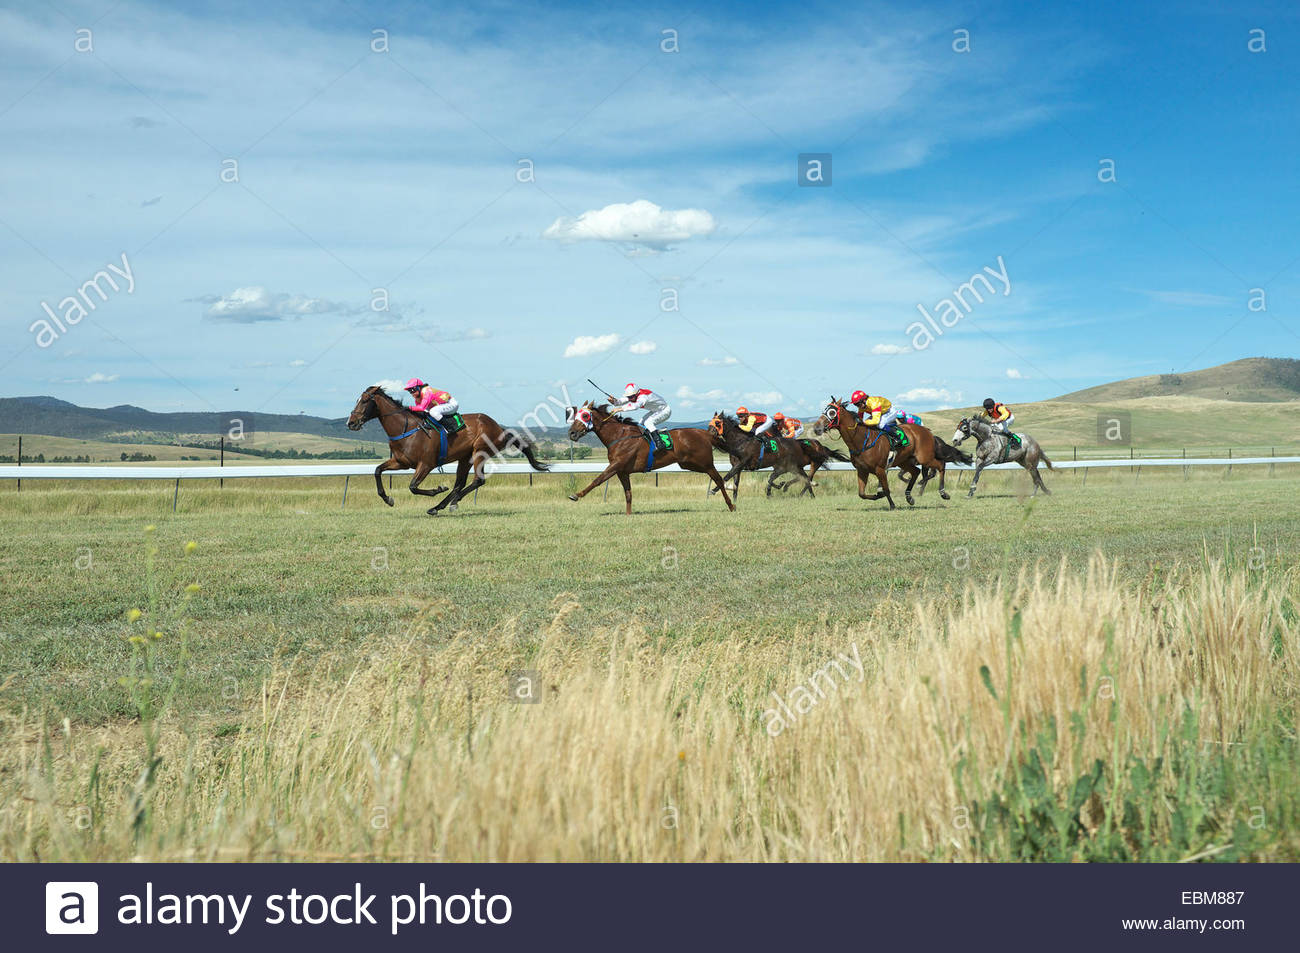 Horse racing at the Adaminaby Races, in Snowy Mountains, NSW, Australia. - Stock Image